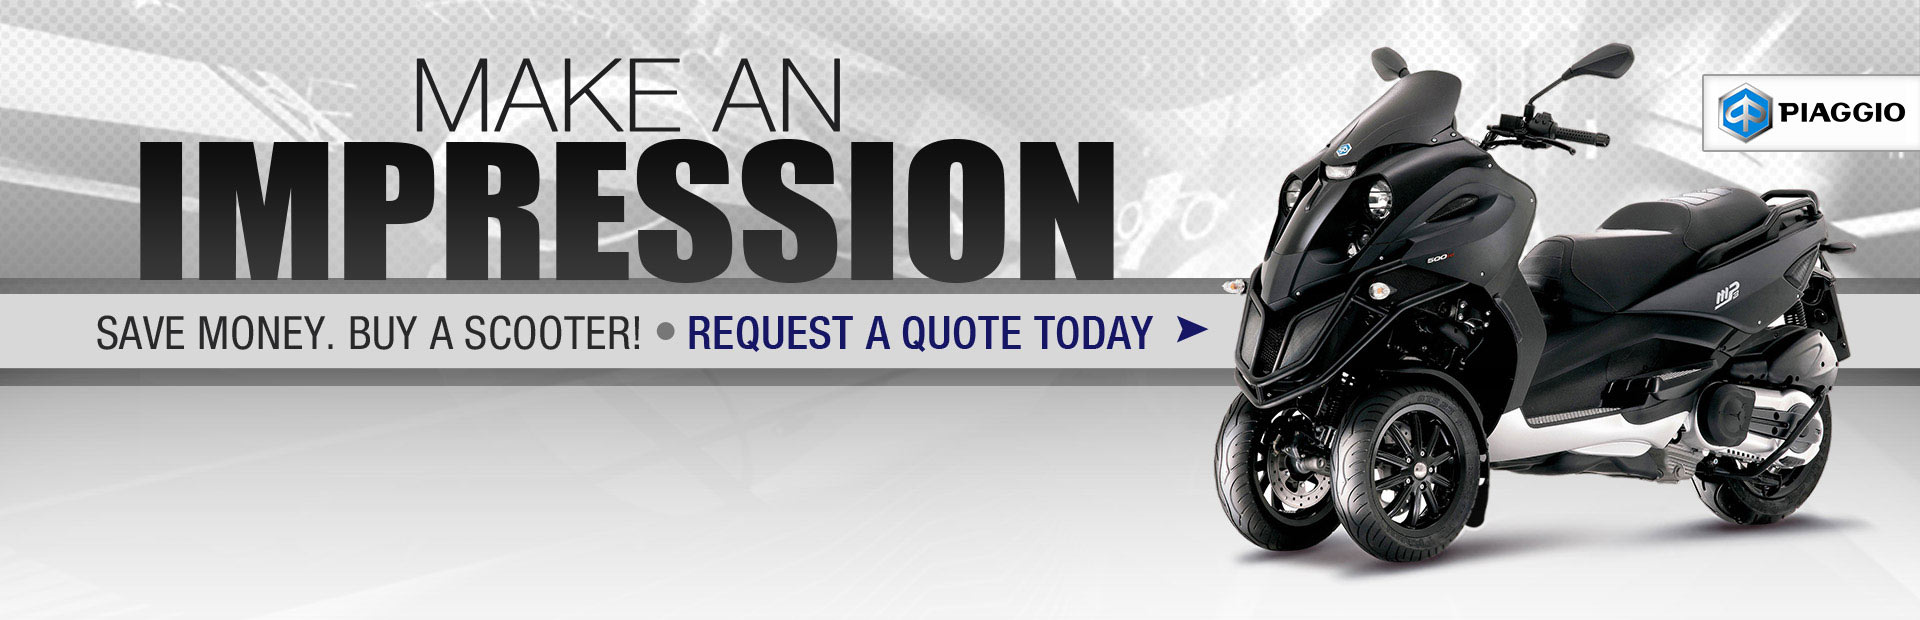 Make an impression on a Piaggio scooter. Save money. Buy a scooter! Request a quote today!